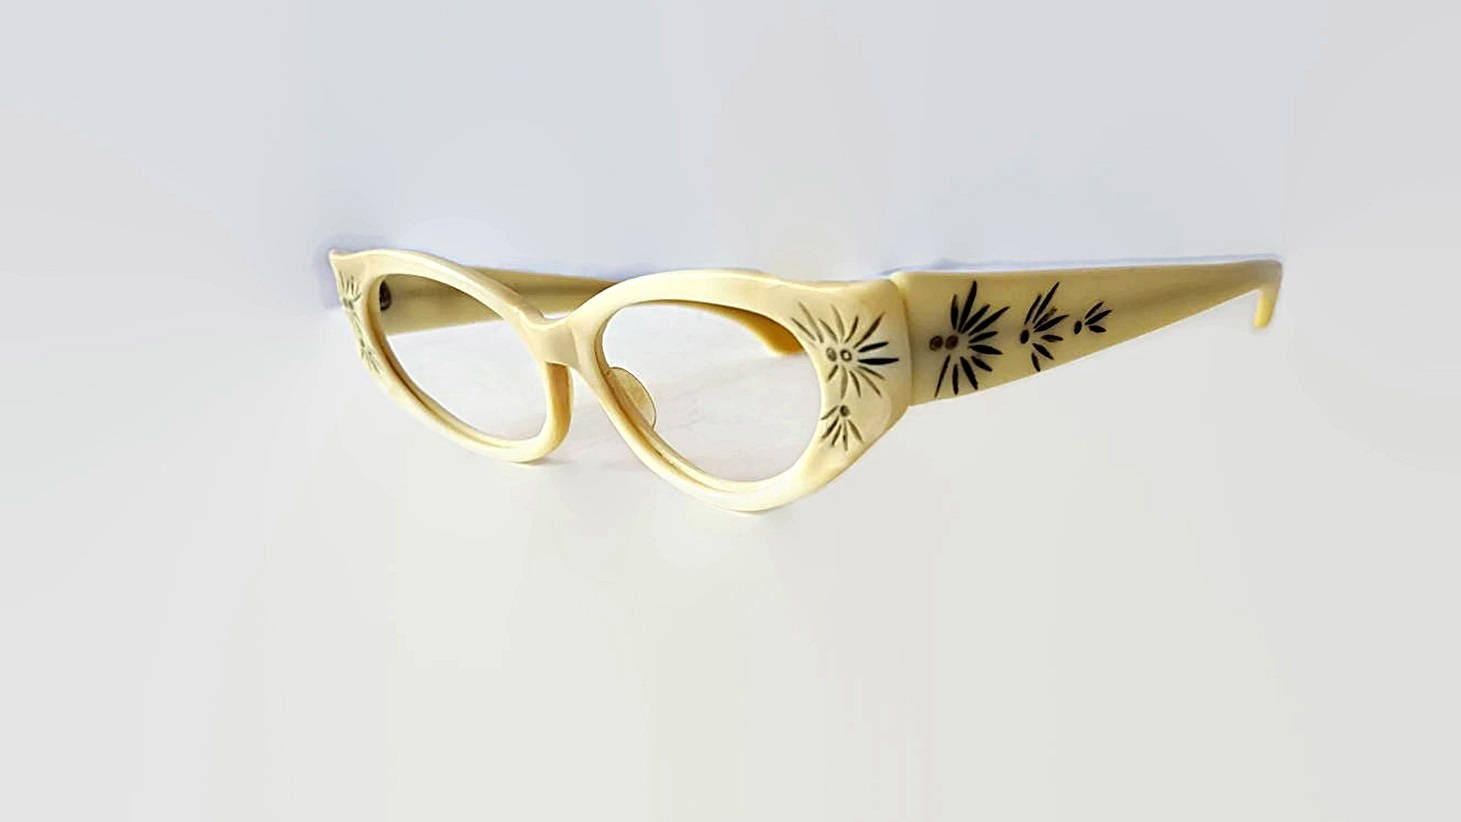 Eyeglass Frame Earpiece : Ray-Ban Eyeglasses Eyeglass Frames Sunglasses 50s